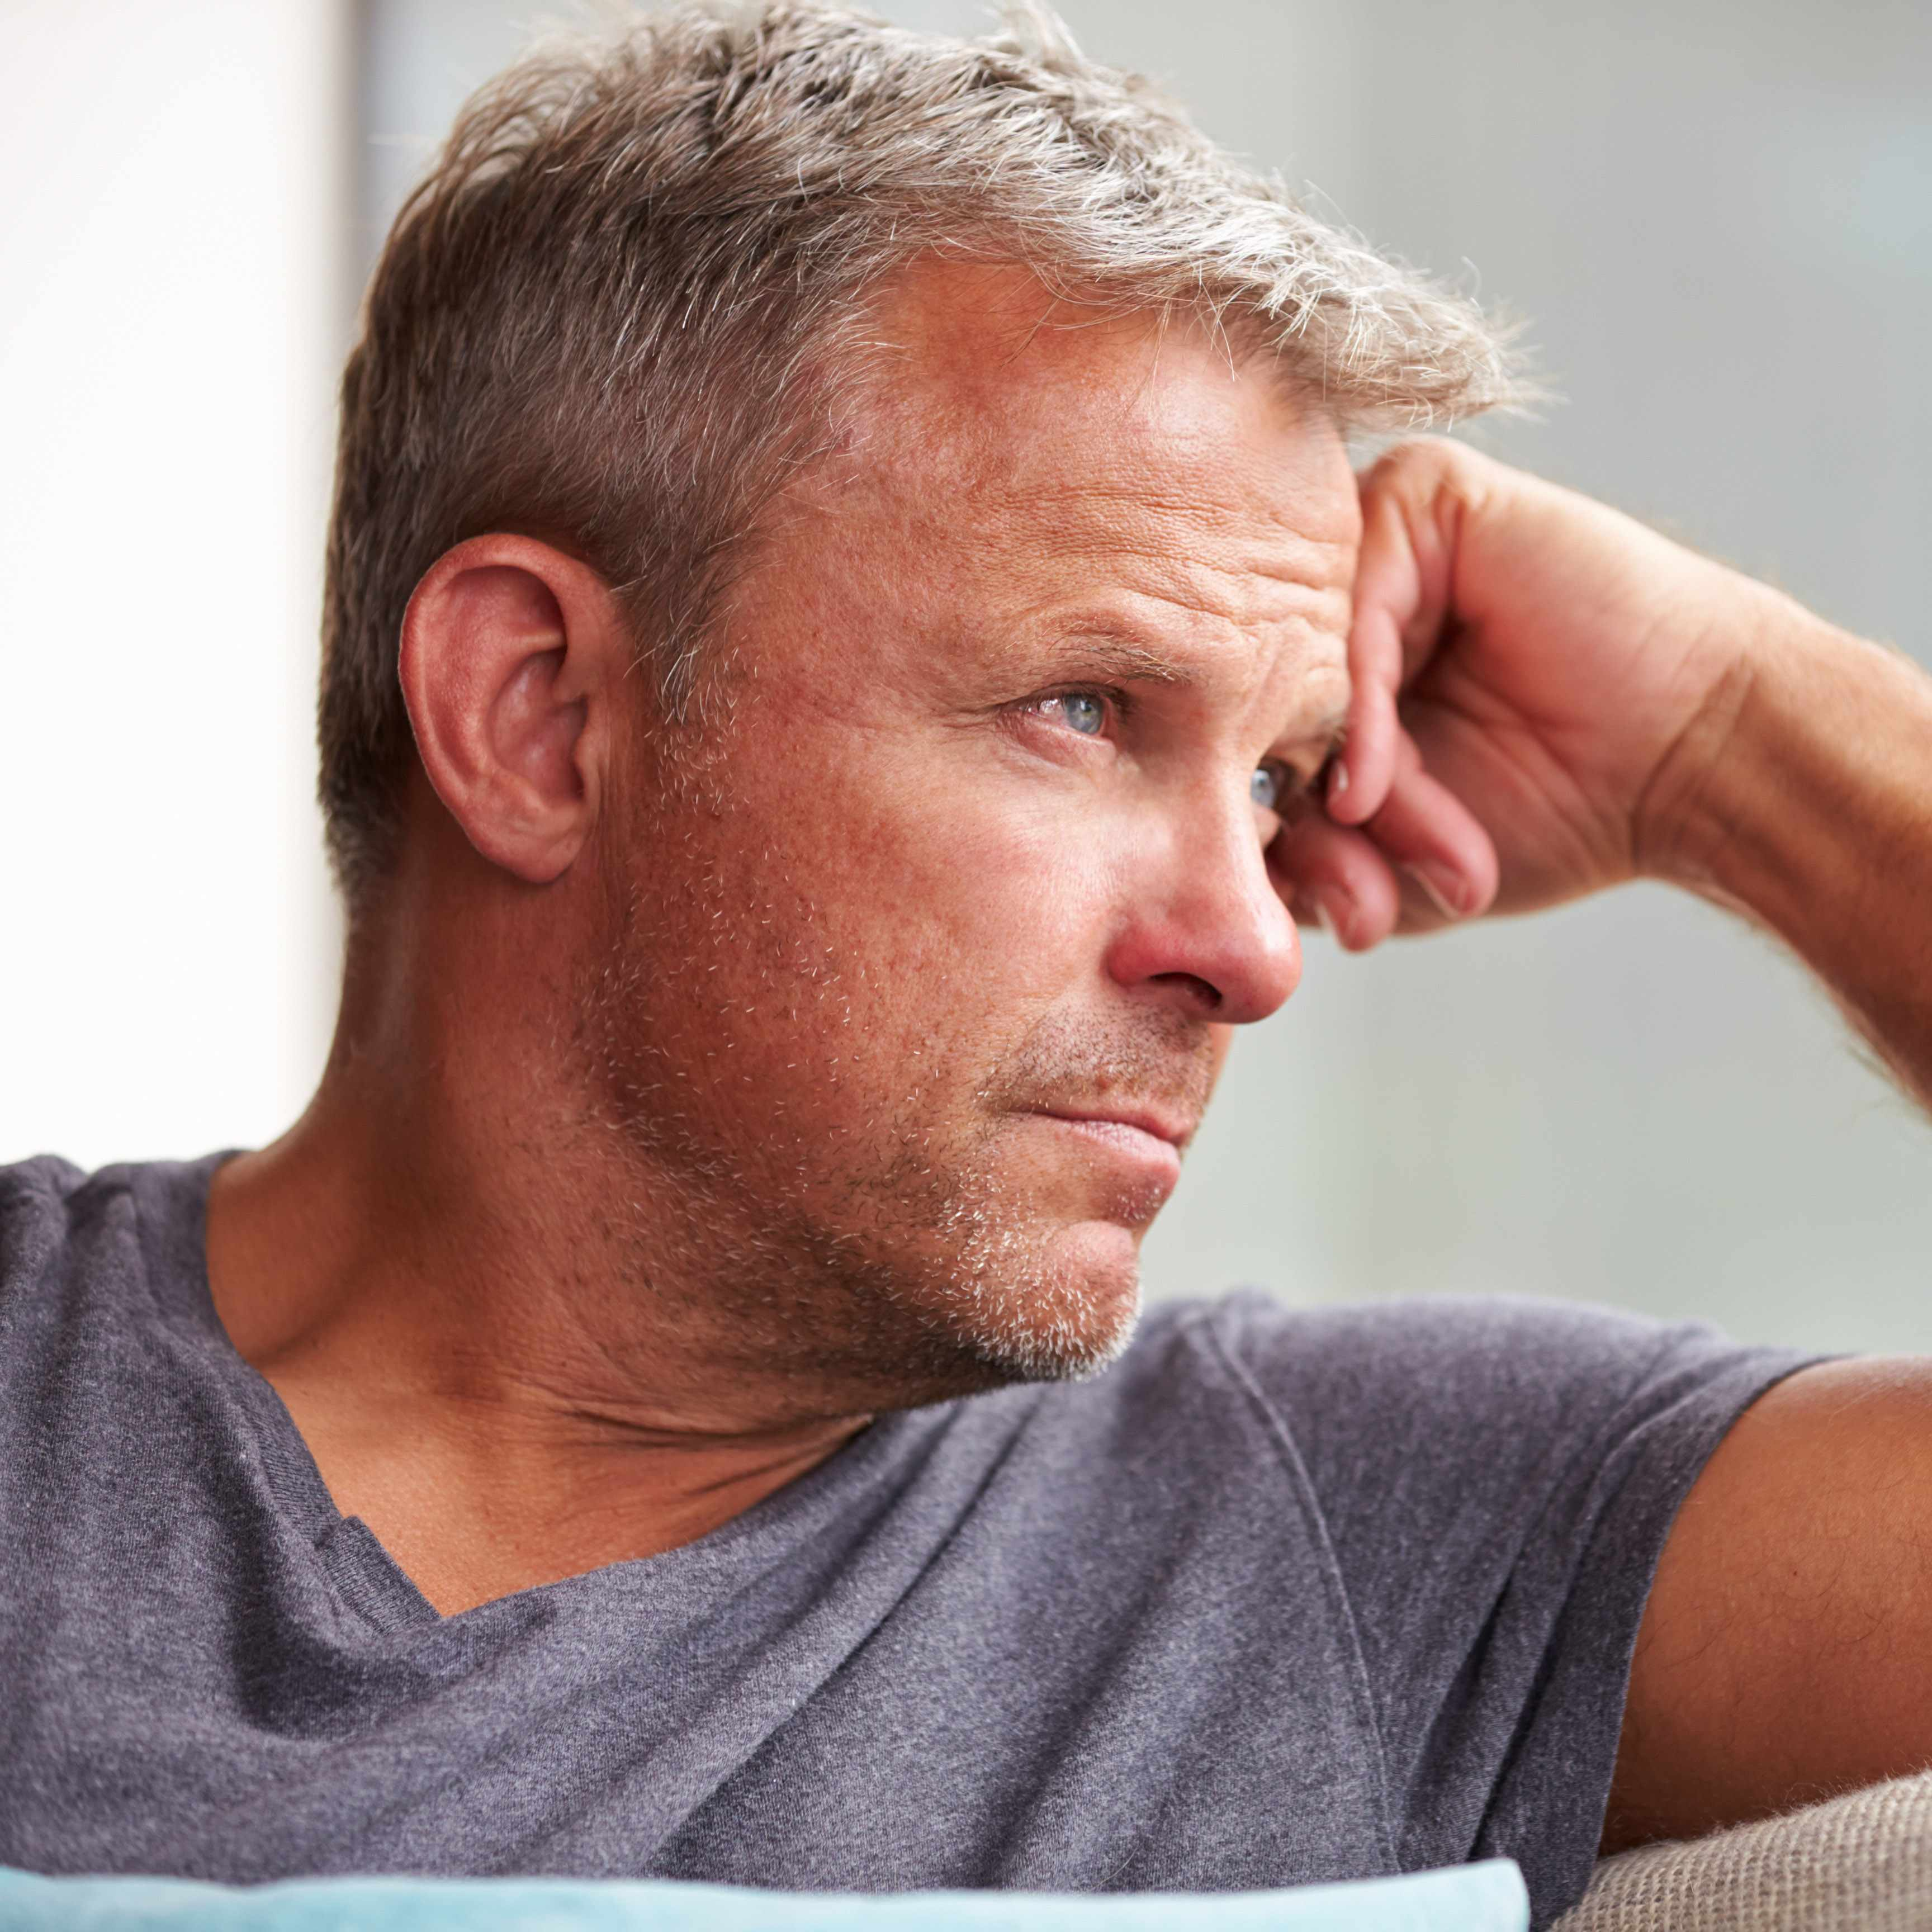 a serious-looking middle-aged man in profile, with his forehead resting on his hand, staring off into the distance